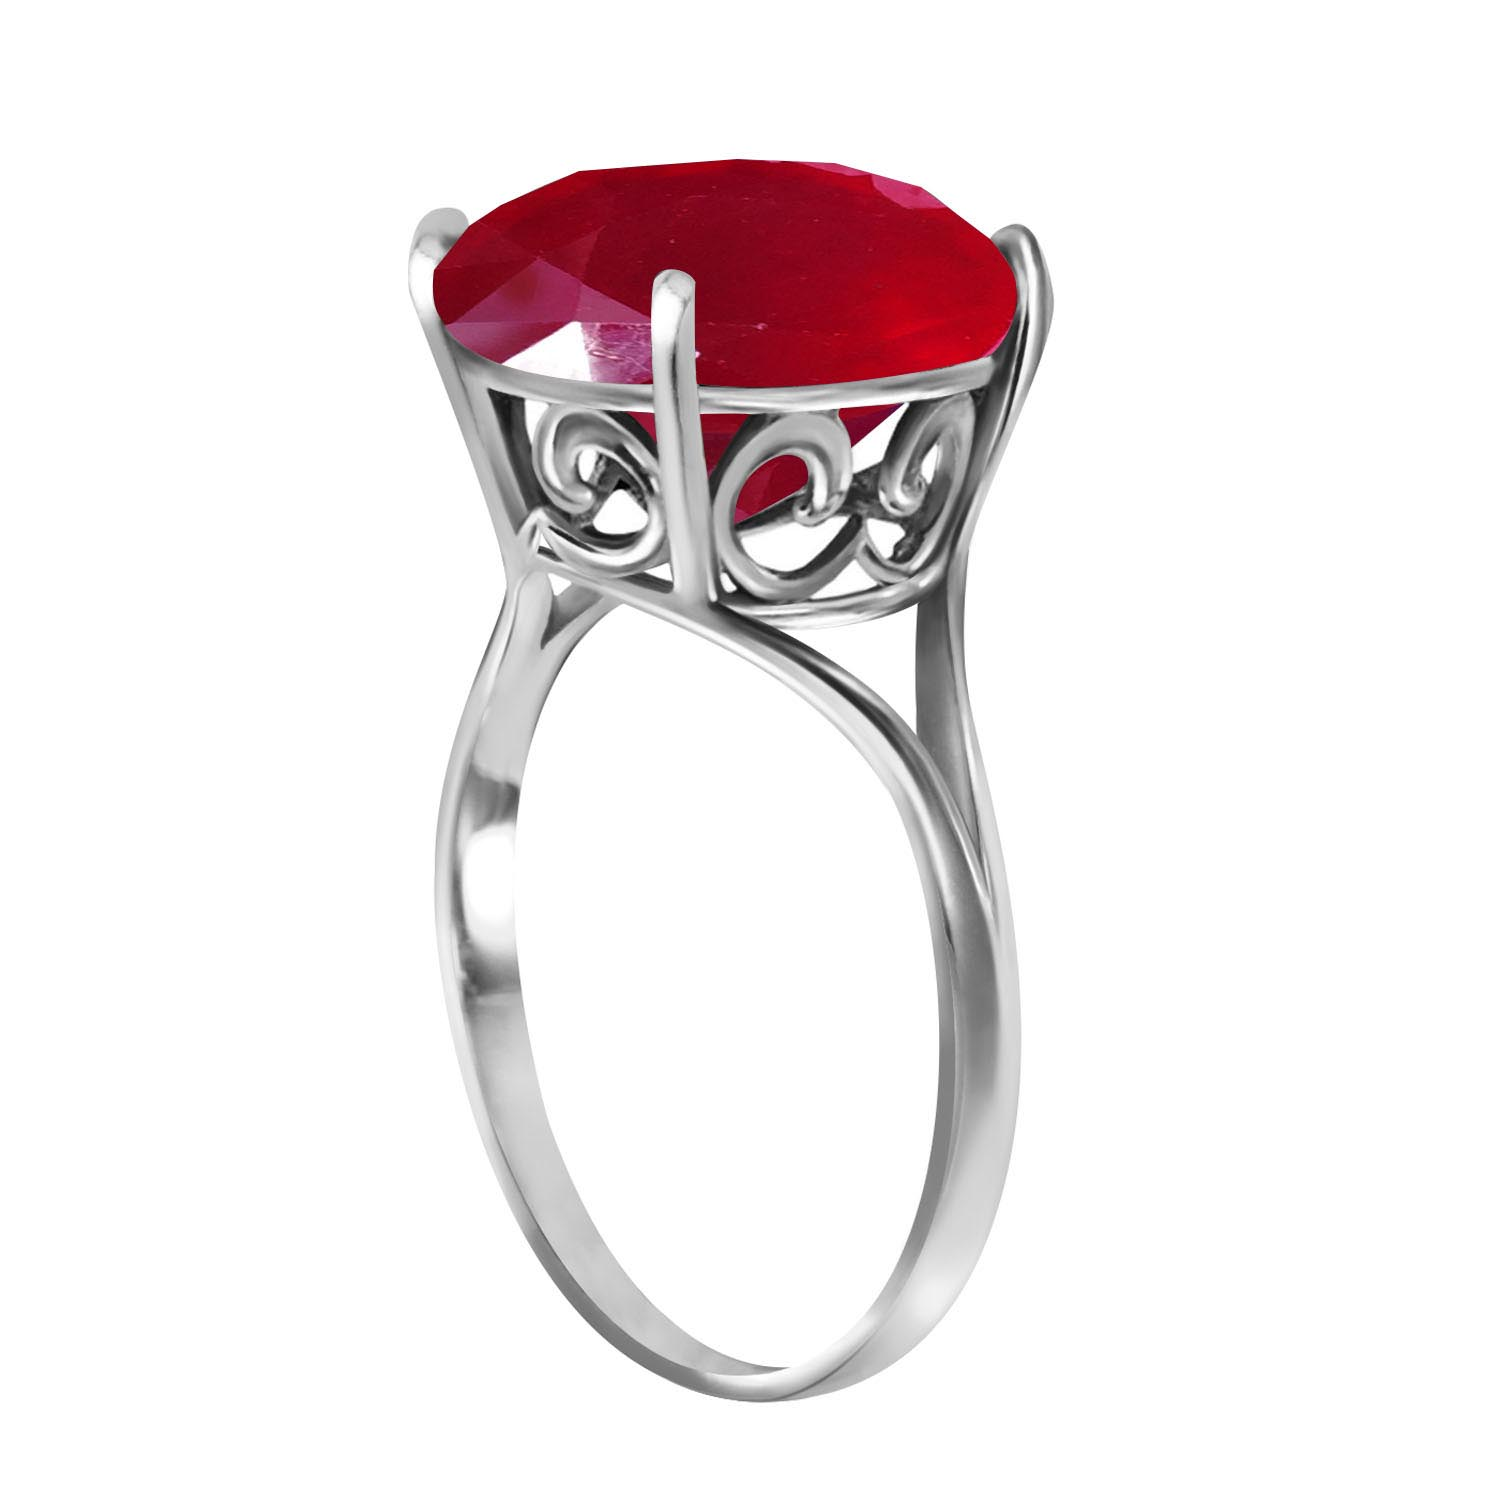 Round Cut Ruby Ring 8.5 ct in Sterling Silver